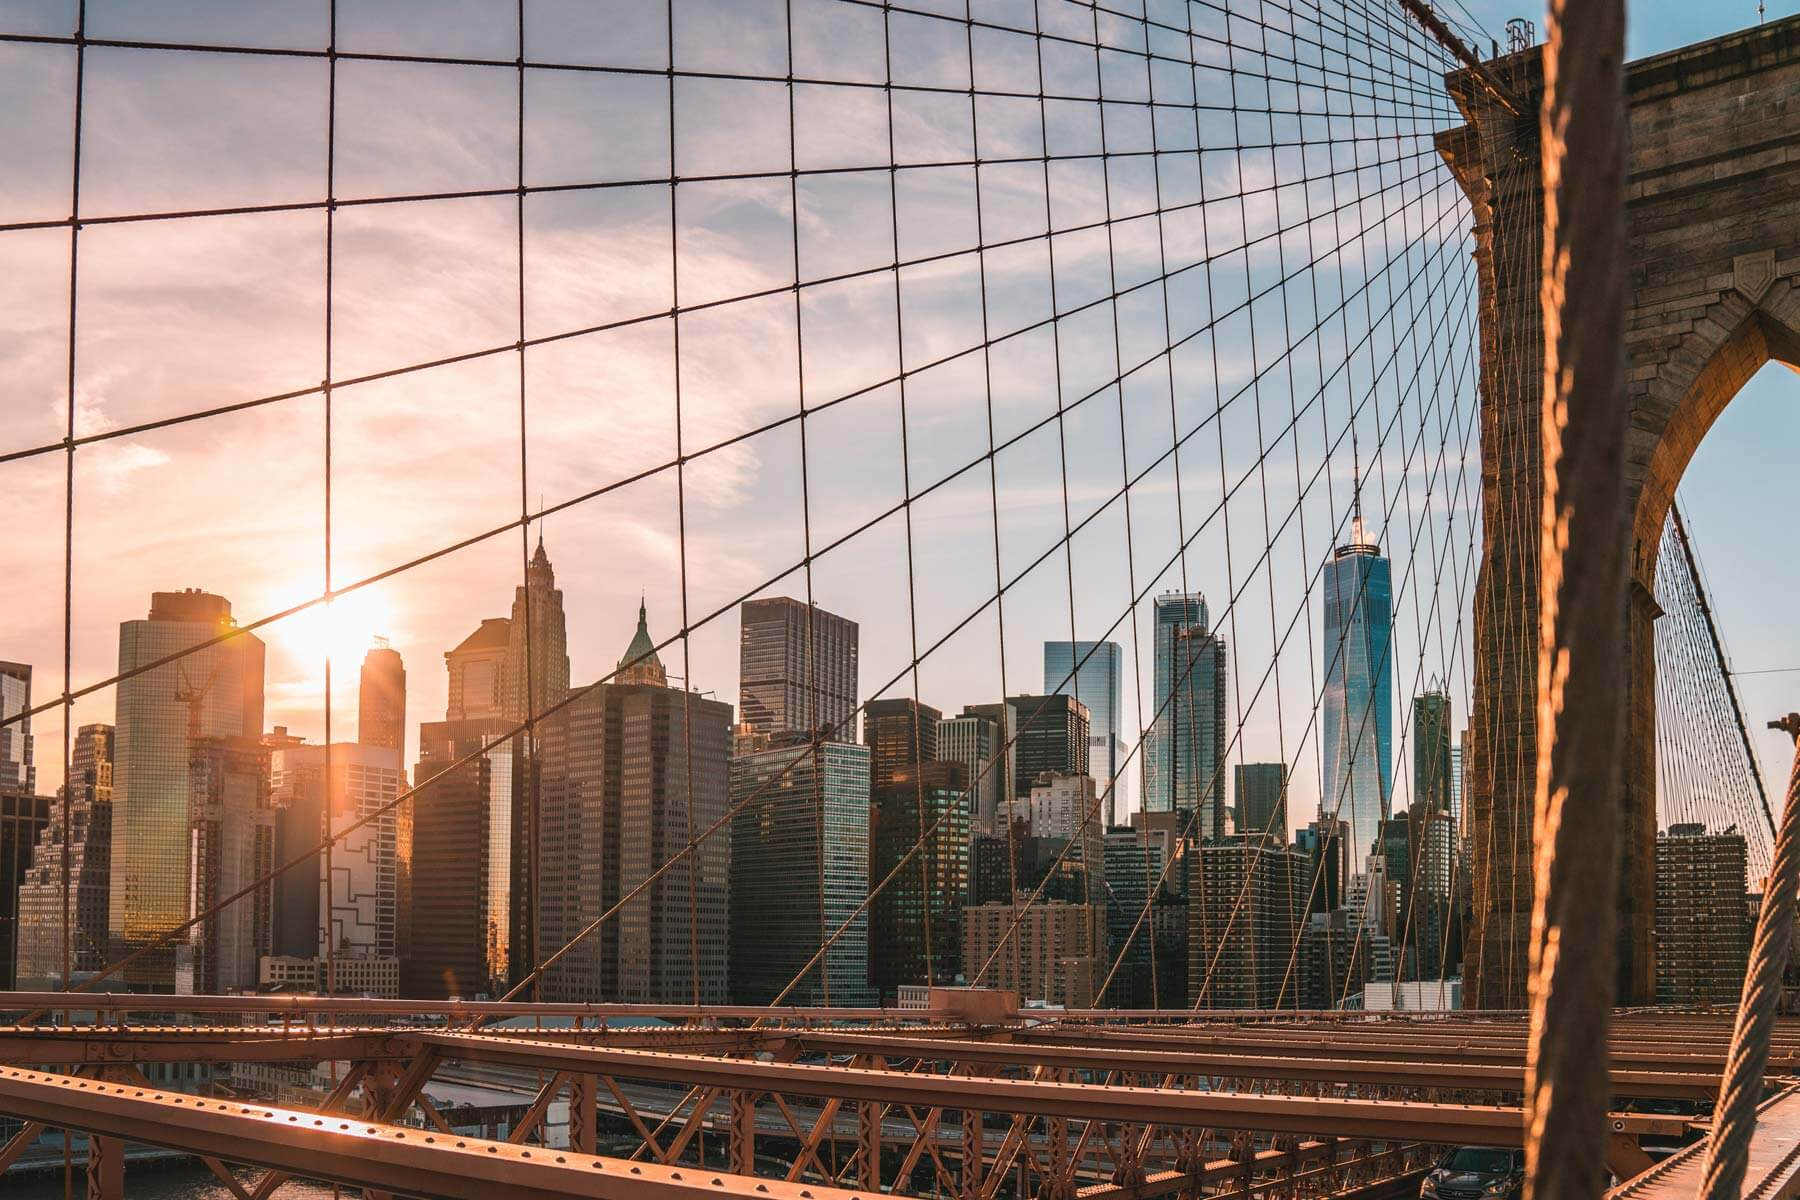 the new york skyline through the lines of the bridge during sunset